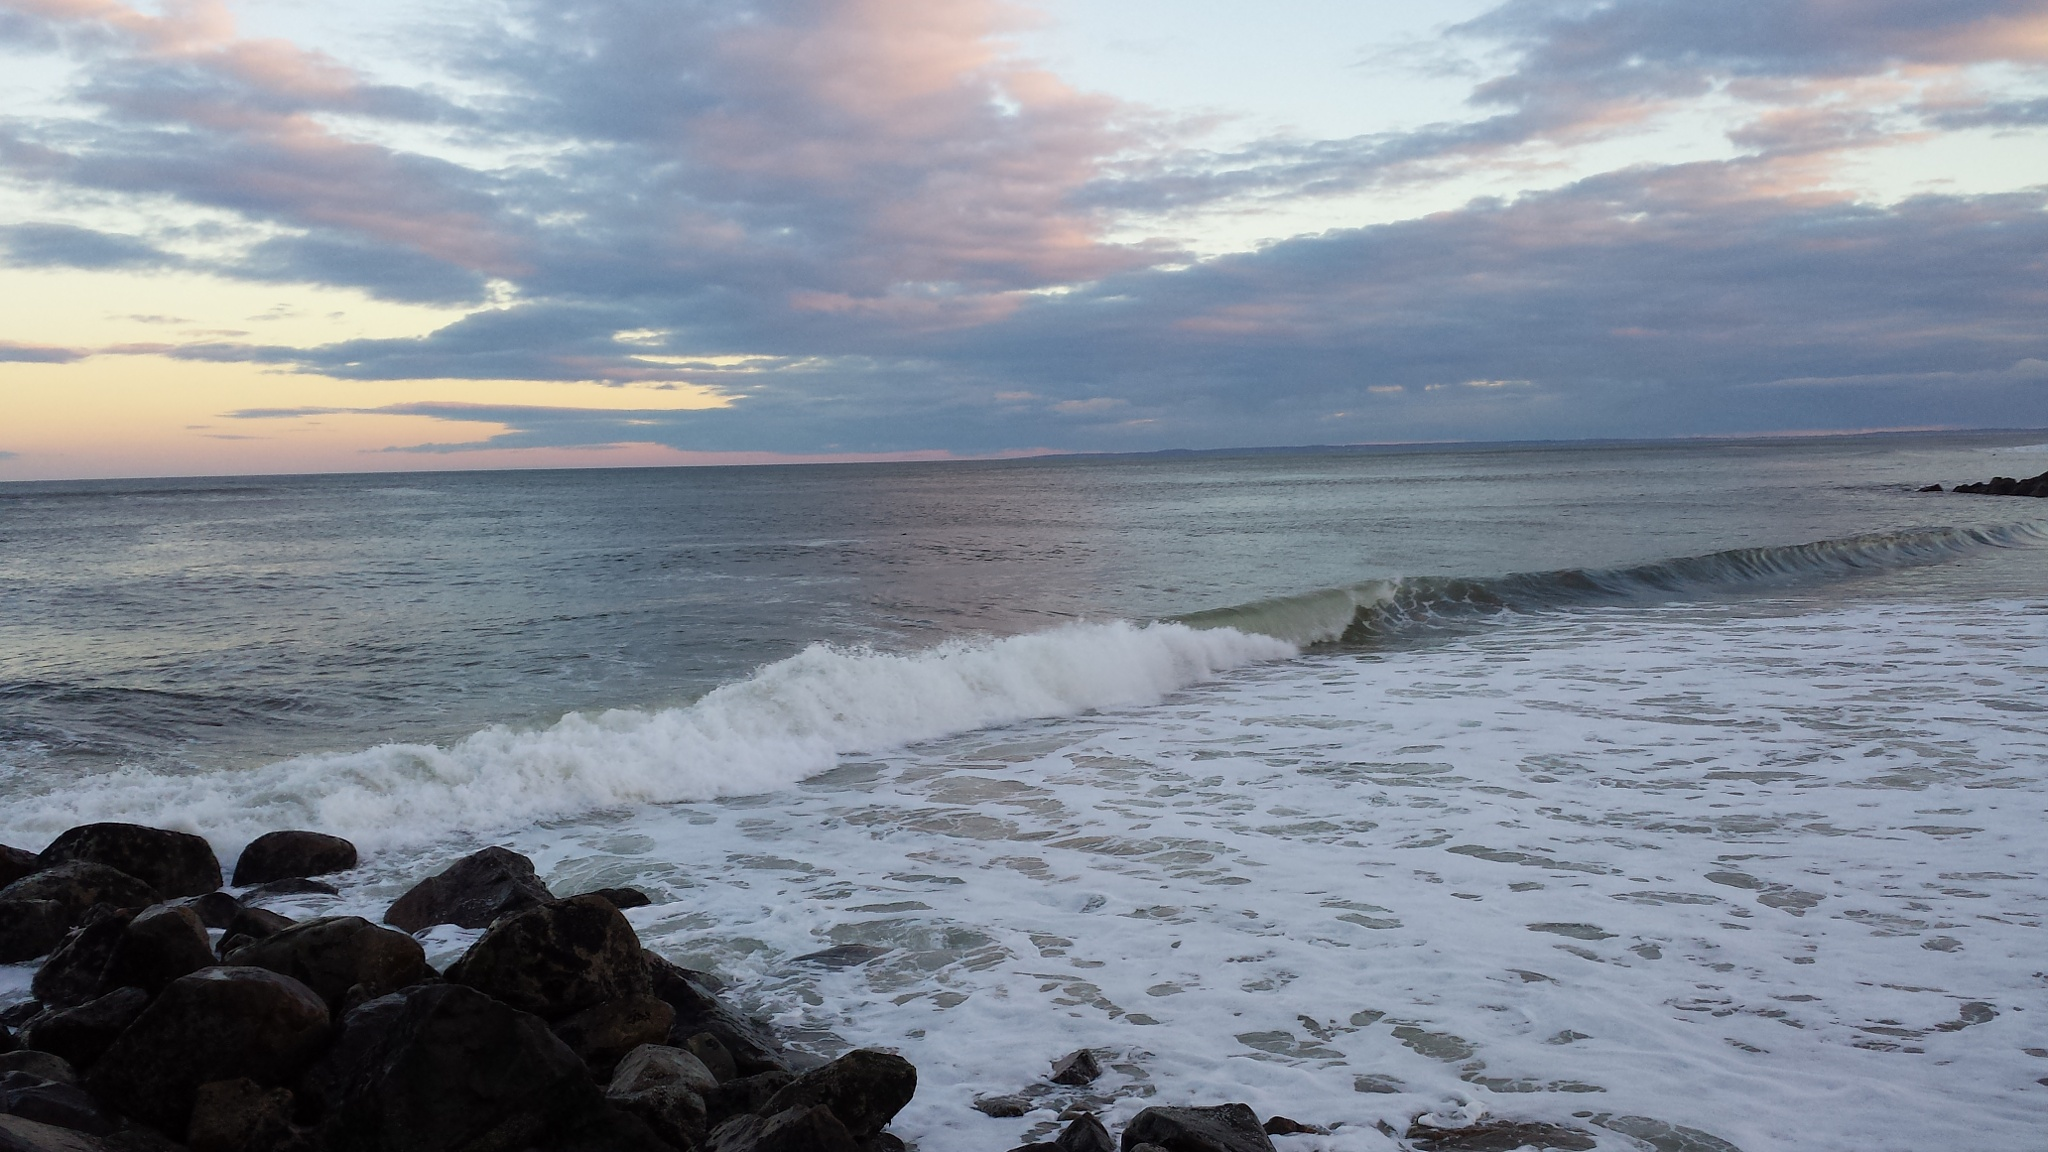 The Ocean, Reflections, Skies, and Waves... by Cary J.Casse